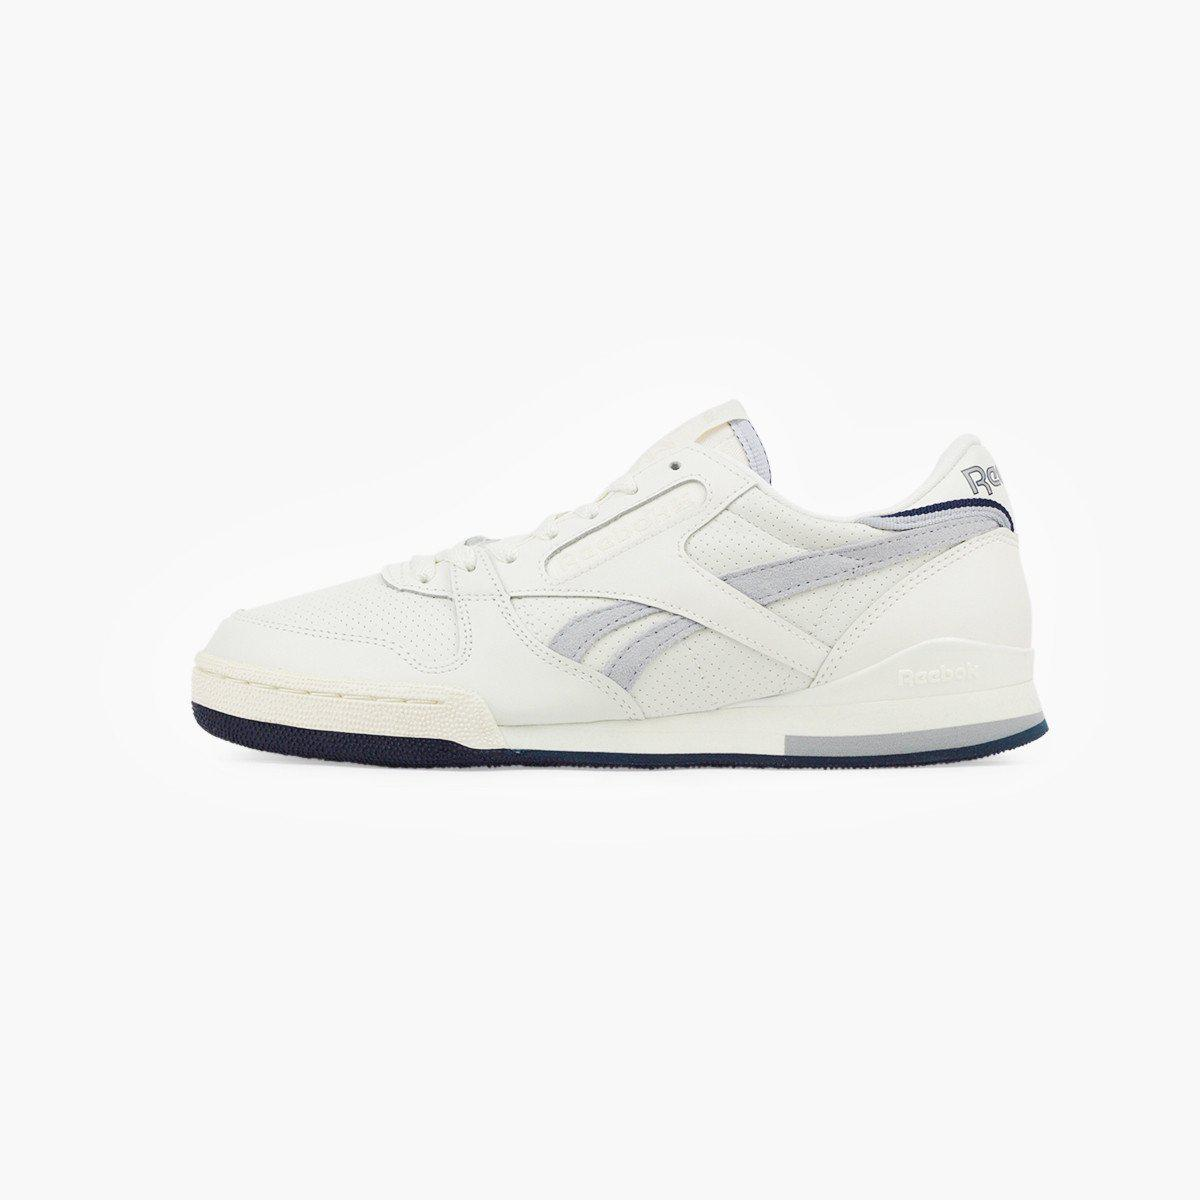 Lyst - Reebok Phase 1 Pro Thof in White for Men - Save ... b875306ec